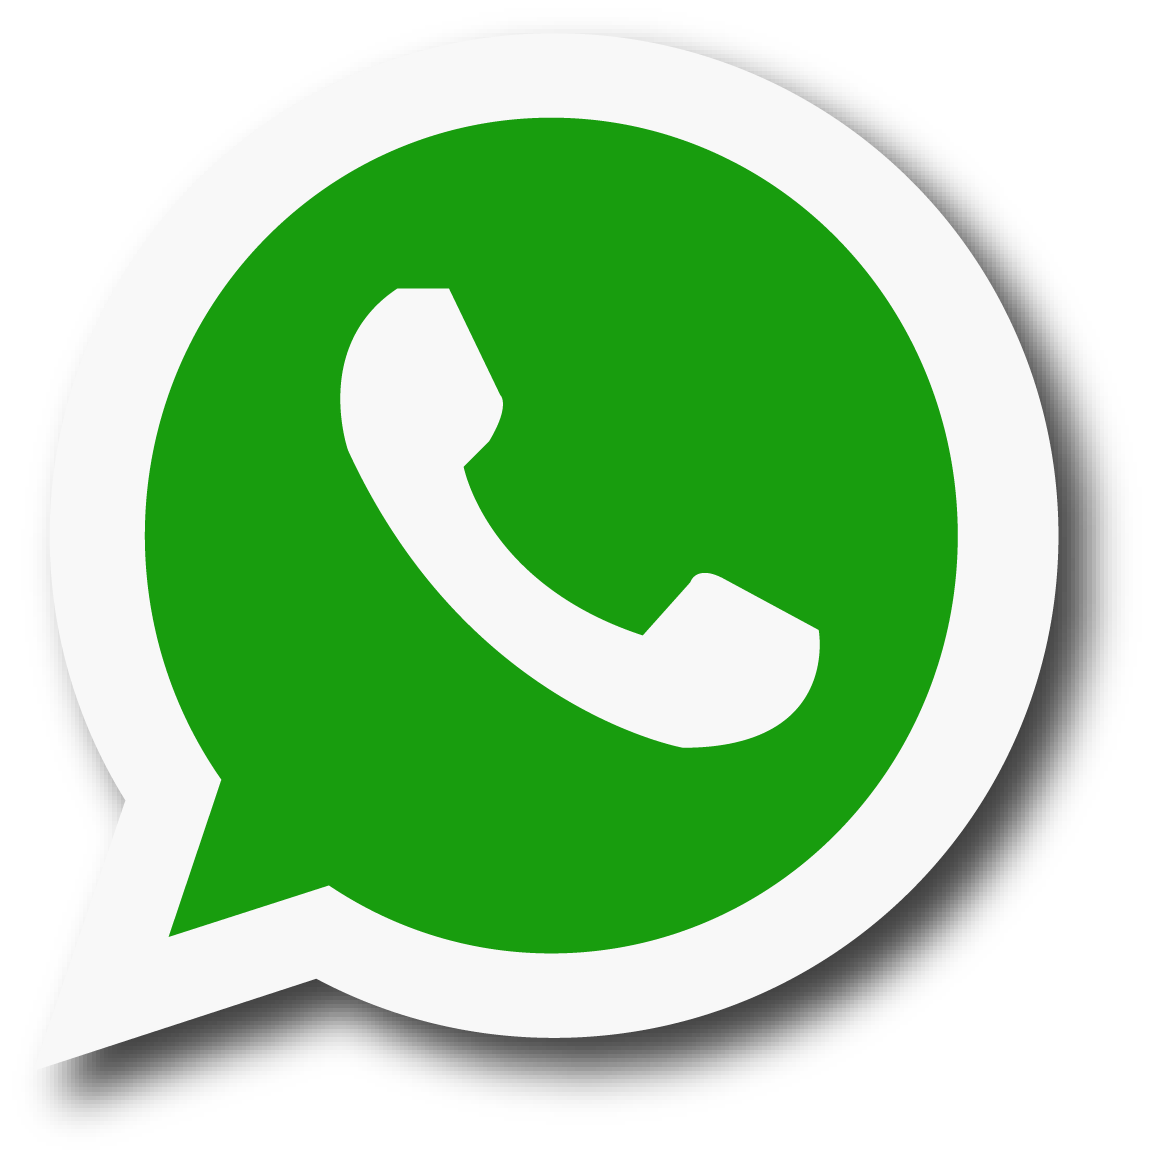 whatsapp-logo-icone-1